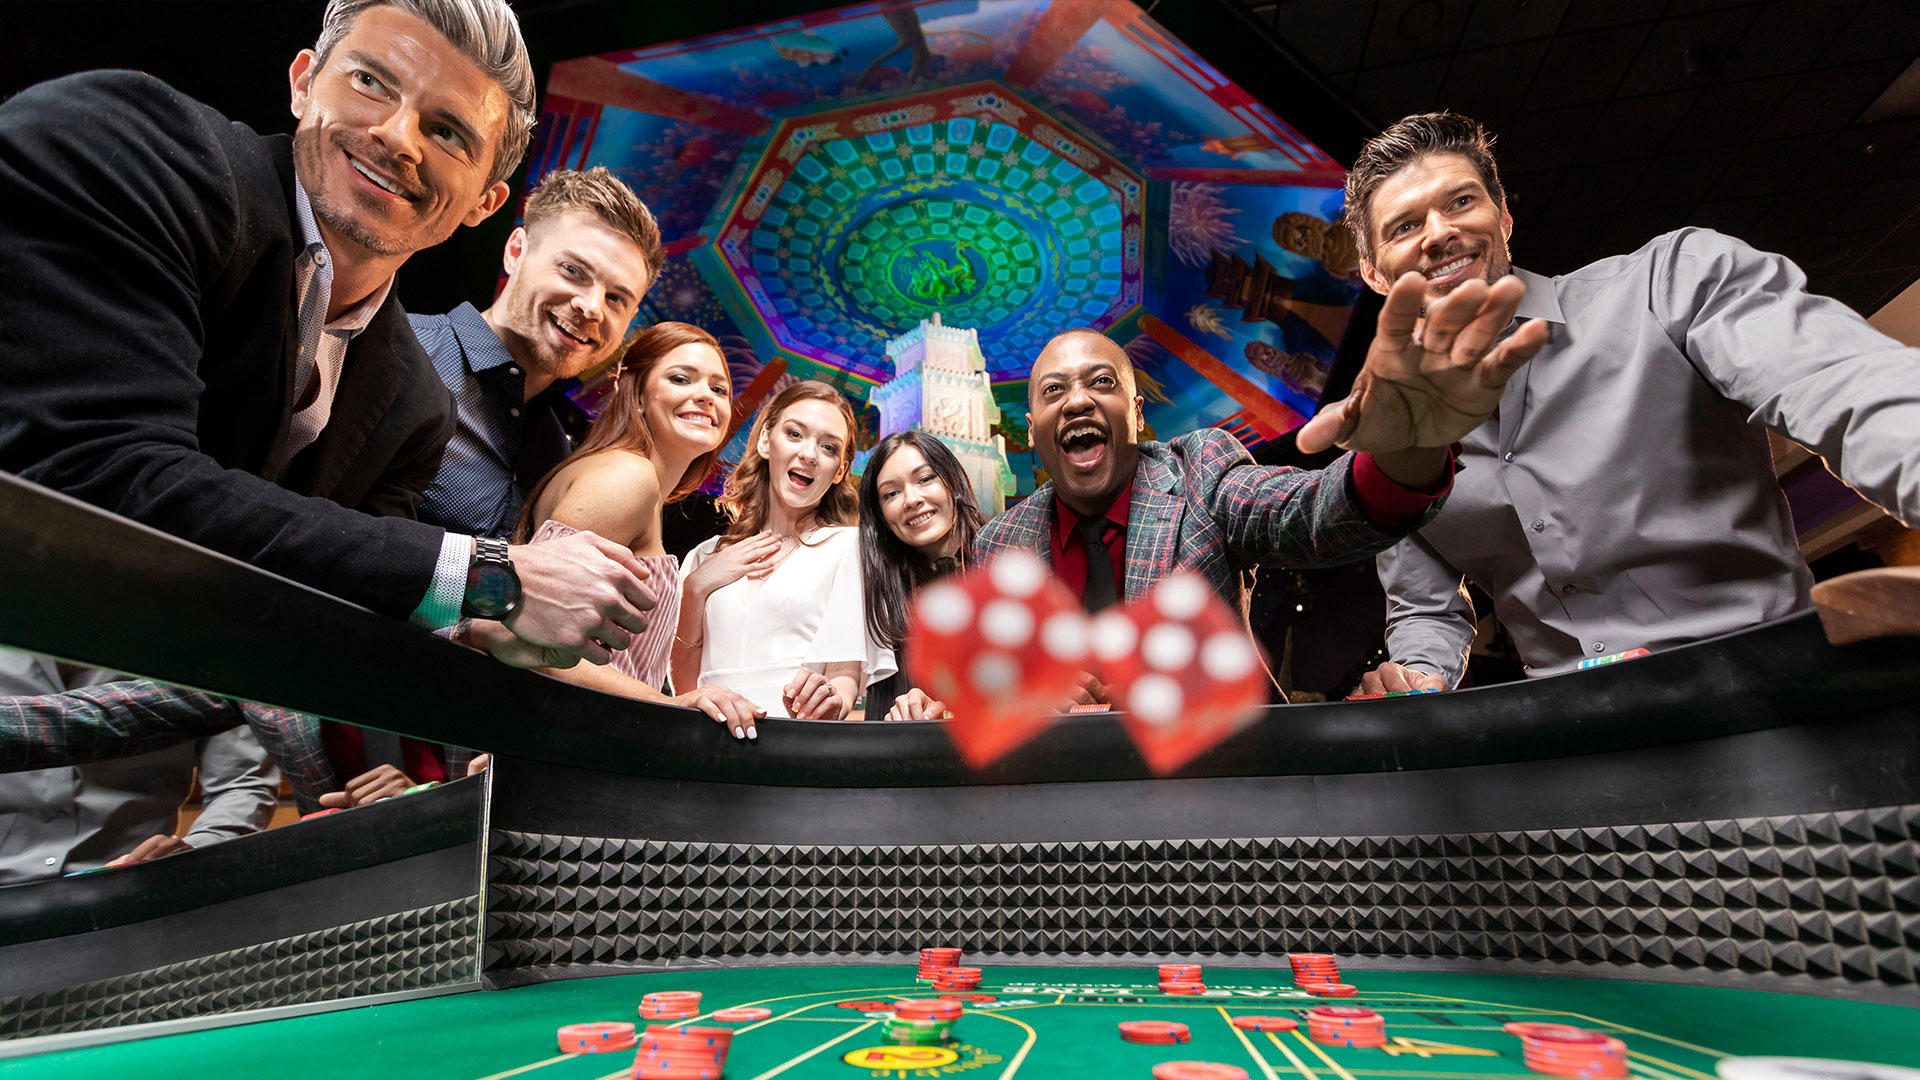 Method of Actively playing Poker Online